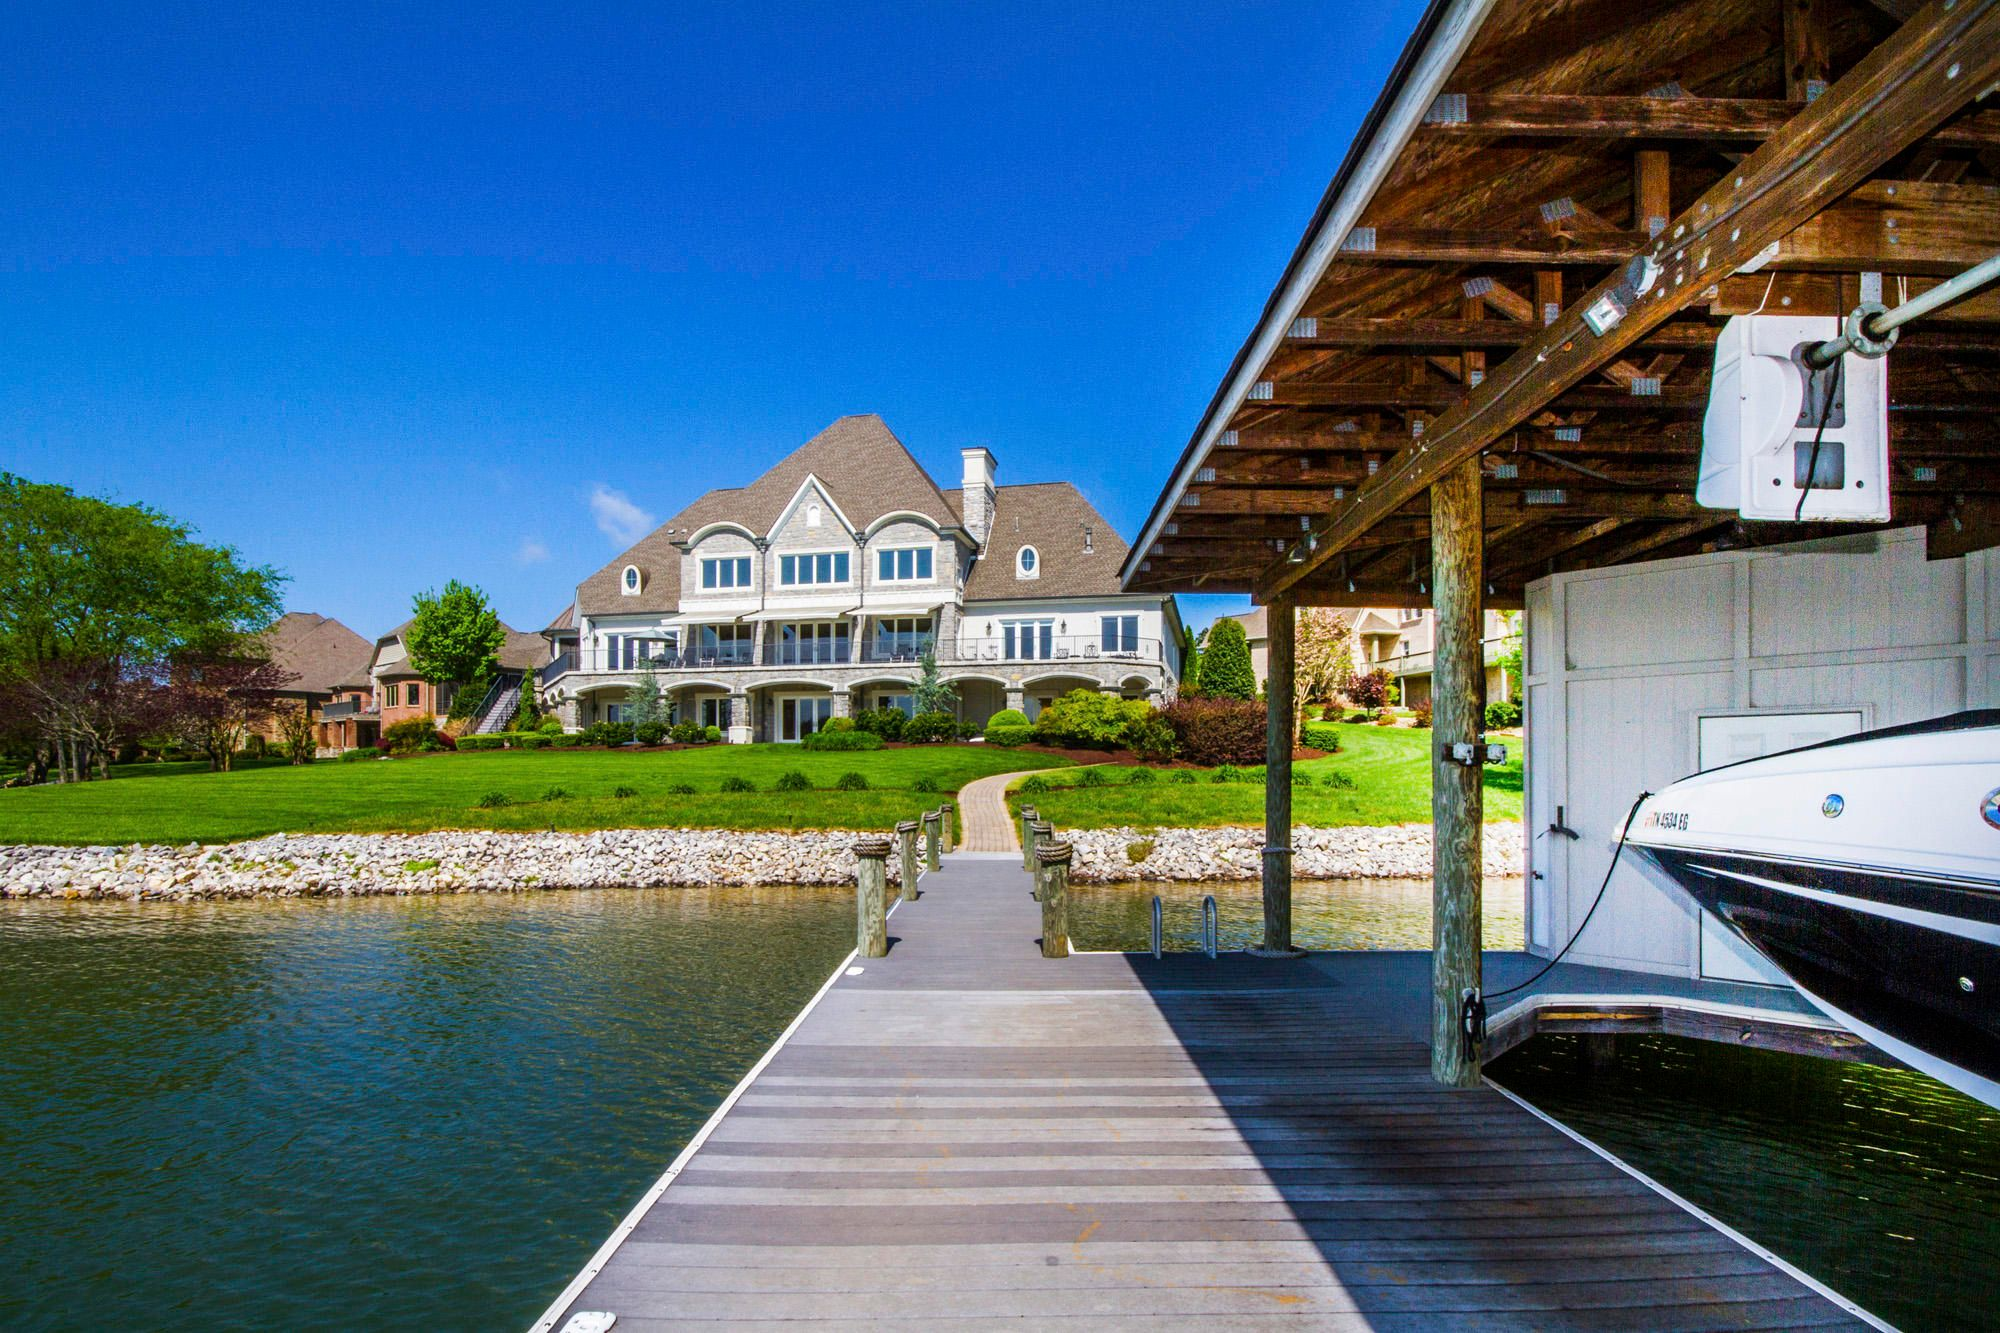 From the Dock to the House